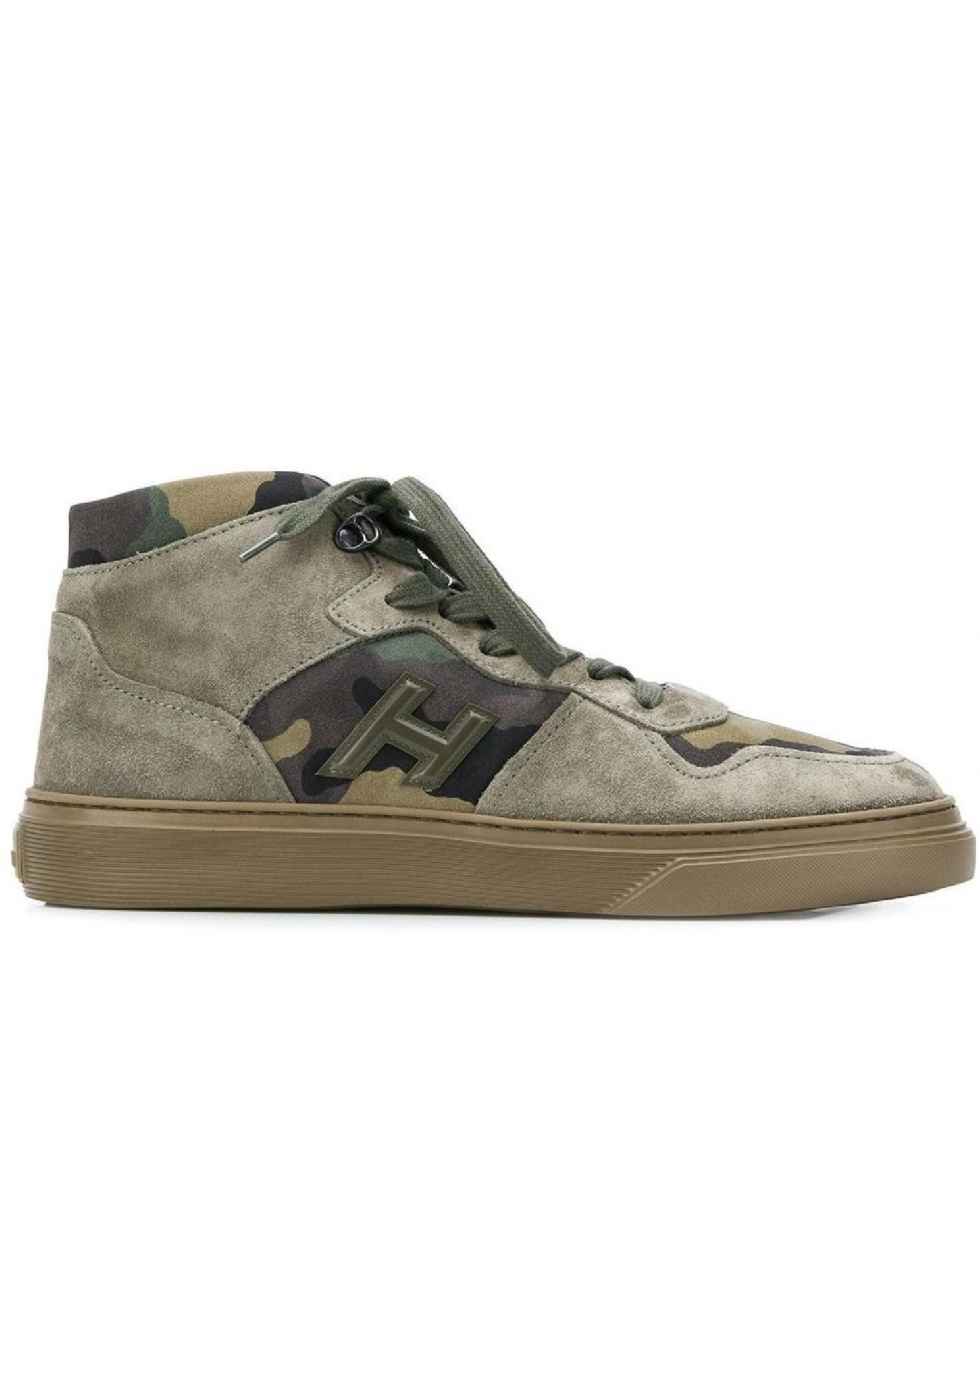 c6e7f68a31a9f ... Hogan H365 men's high top sneakers in nabuk leather and camouflage  fabric ...